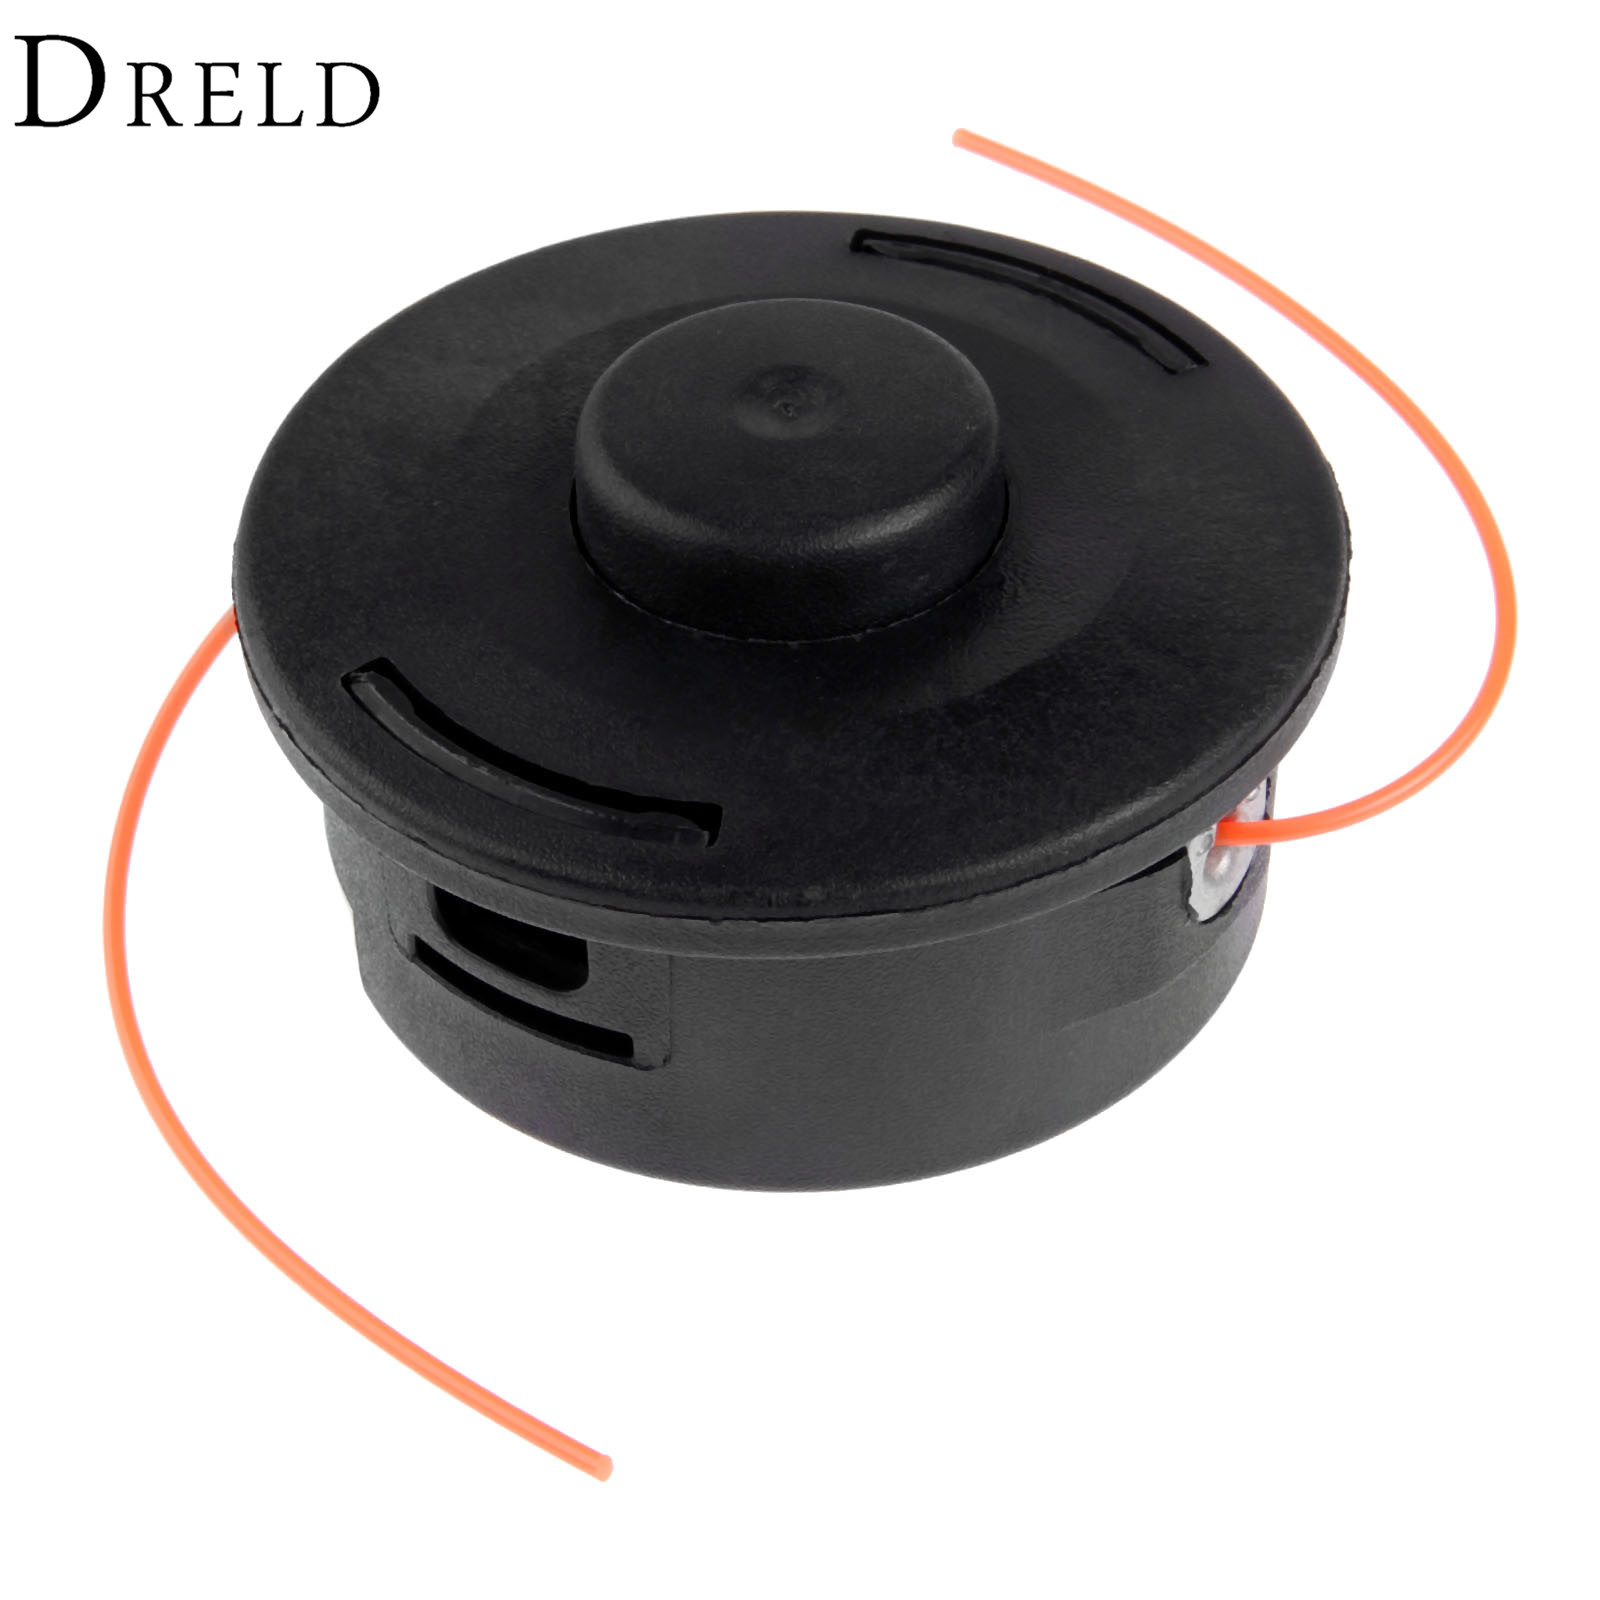 DRELD Double Line Bump Feed Trimmer Head M10*1.25 for STIHL FS80 FS81 FS85 FS86 FS87 FS100 FS106 Brushcutter Trimmer Lawn Mower